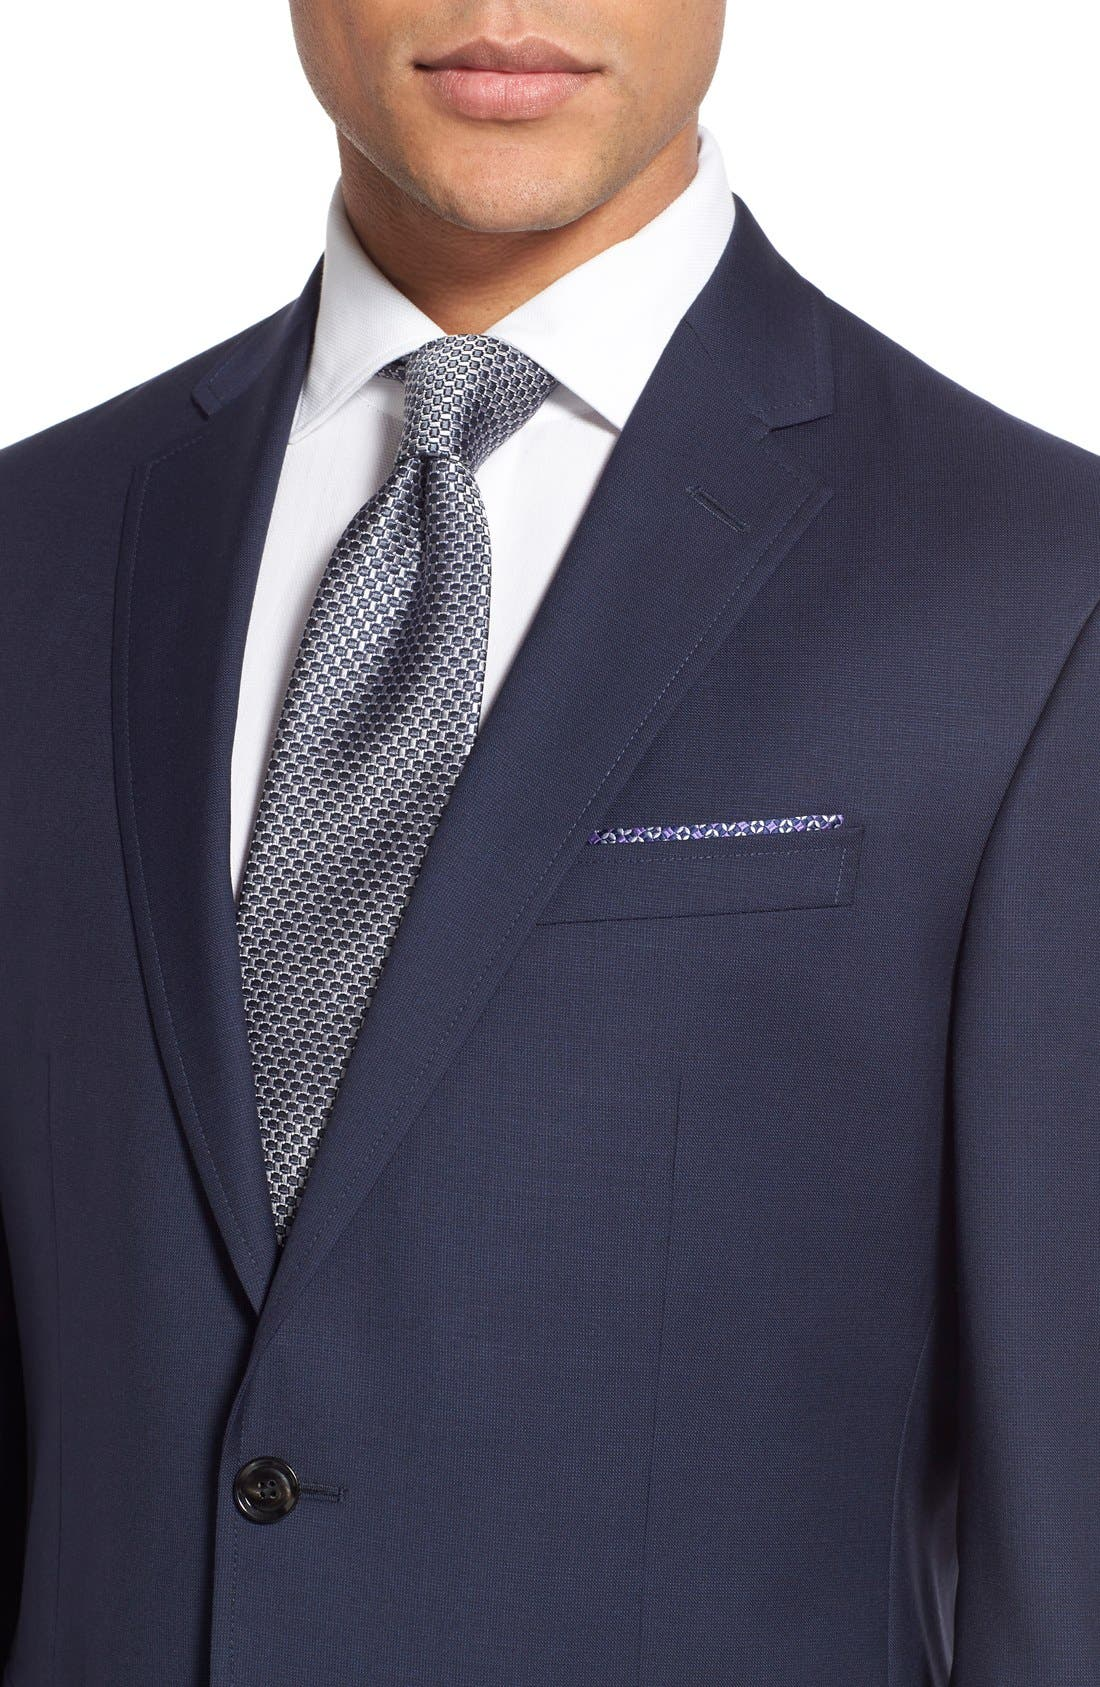 Trevi Trim Fit Wool Blazer,                             Alternate thumbnail 5, color,                             Navy